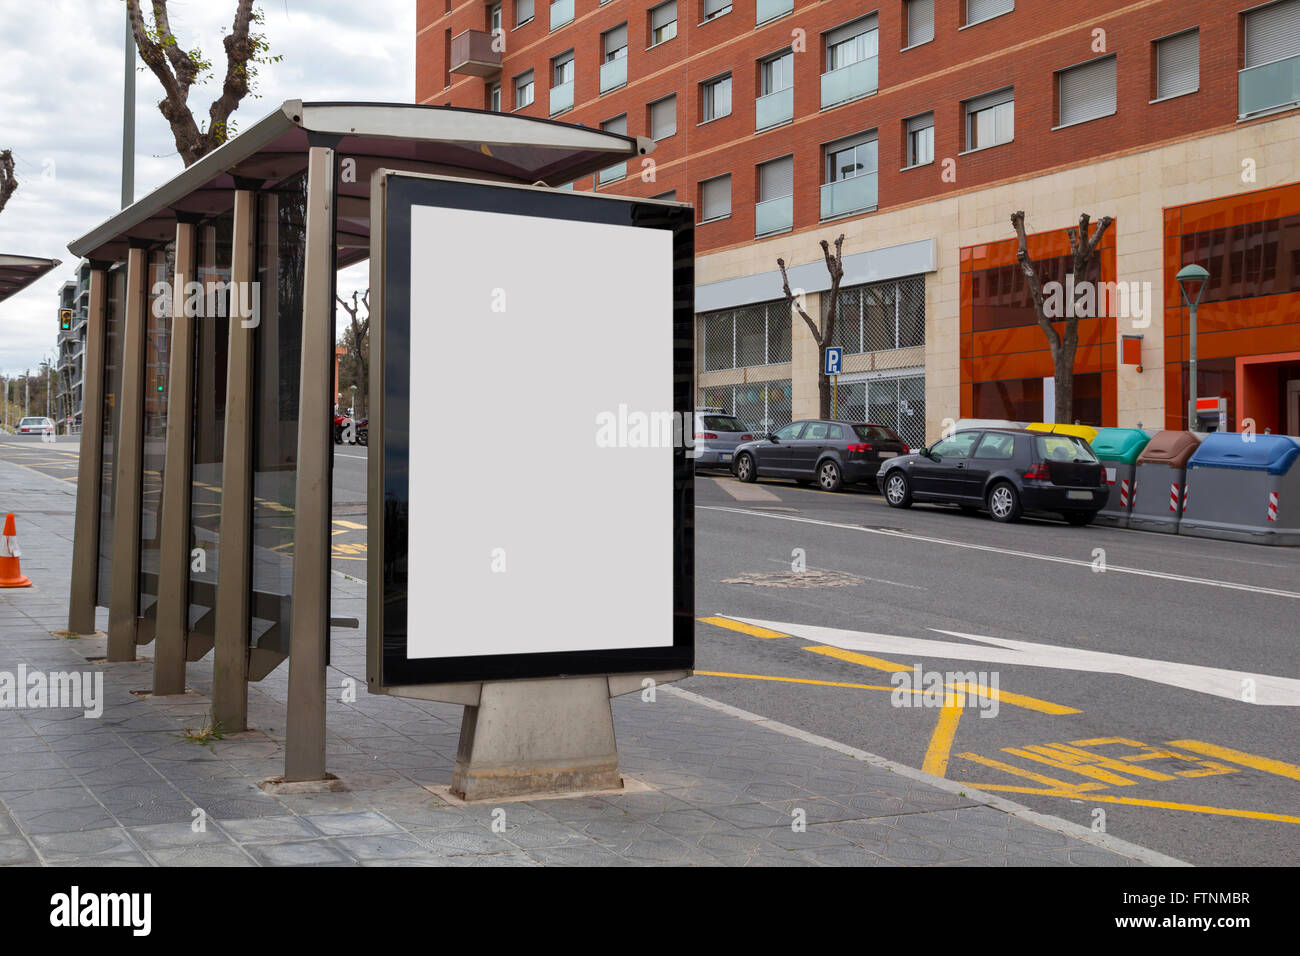 Blank bus stop ad